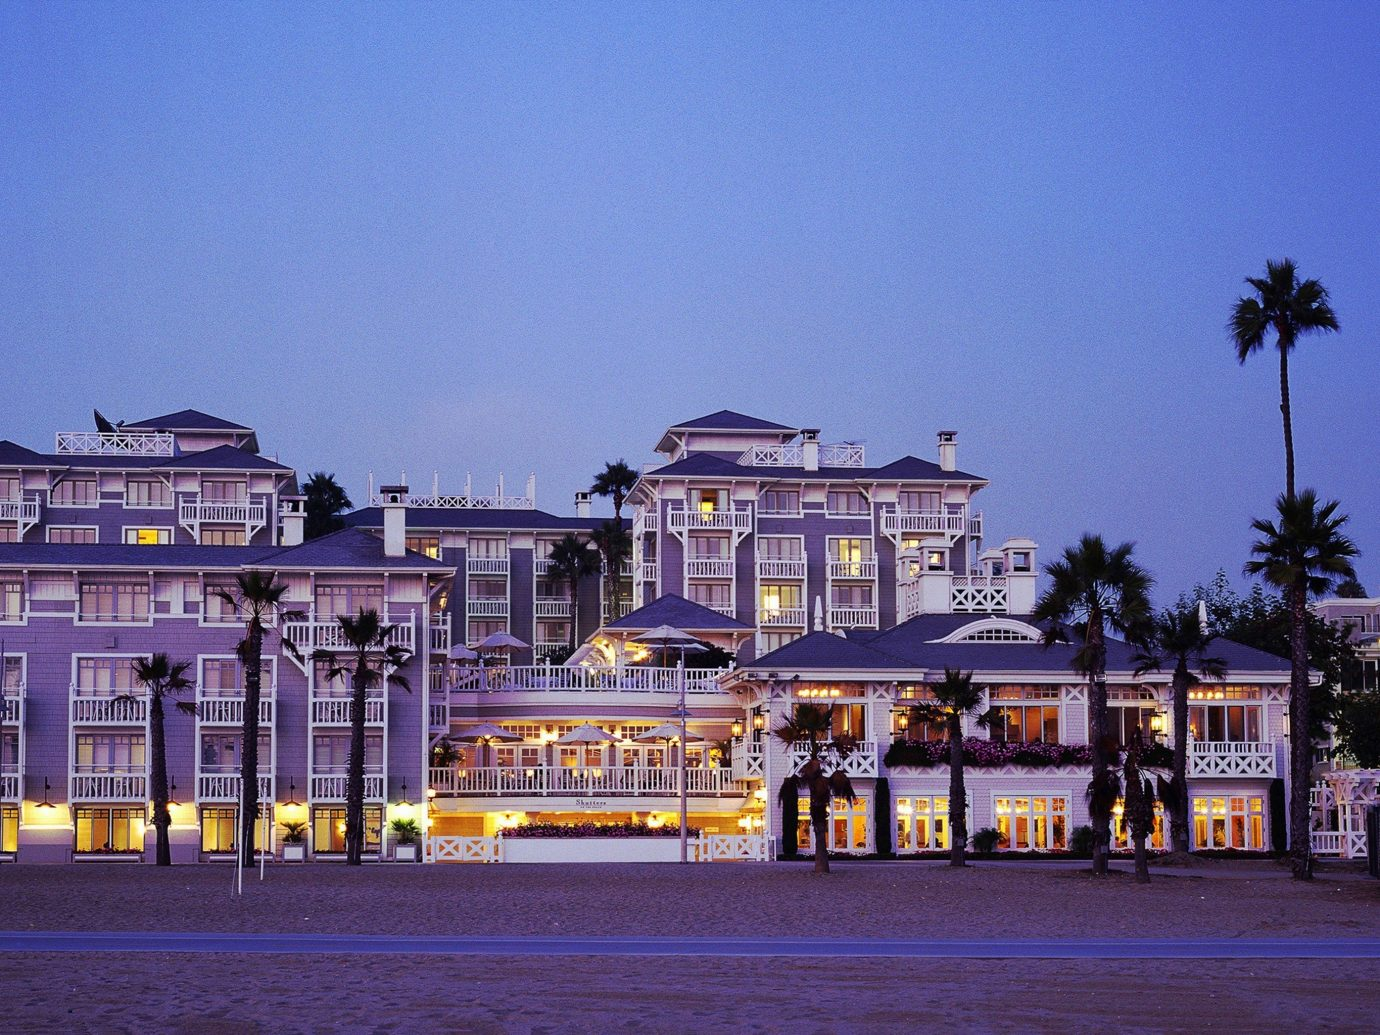 Trip Ideas sky outdoor Town landmark night cityscape vacation evening tourism Downtown dusk palace